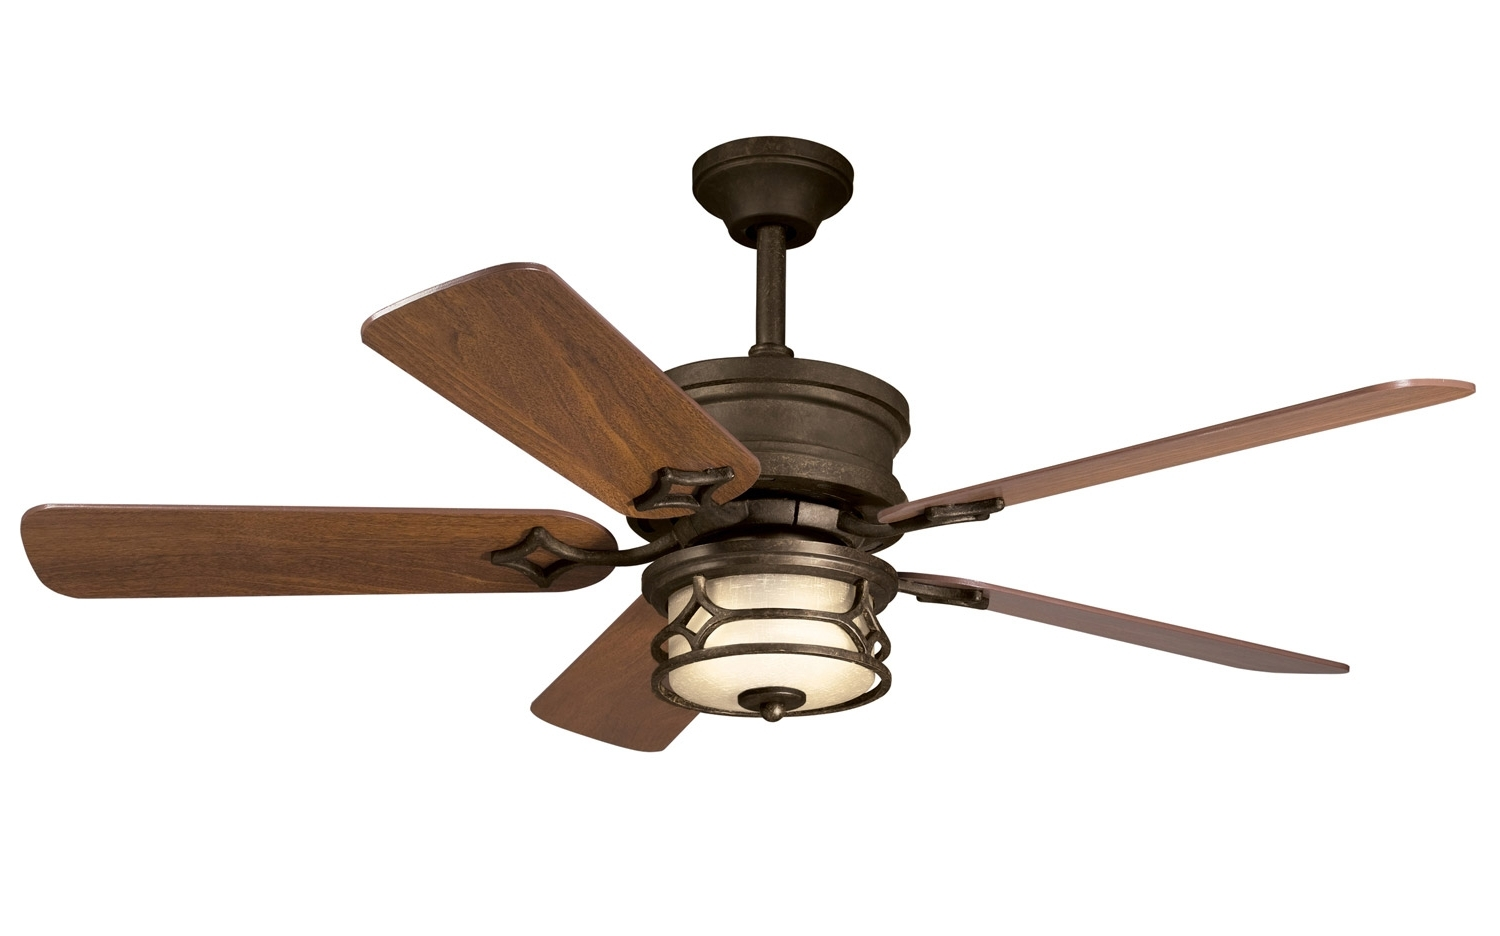 Craftsman Outdoor Ceiling Fans In Most Current Craftsman Ceiling Fans With Lights Simple Outdoor Ceiling Fan With (View 5 of 20)